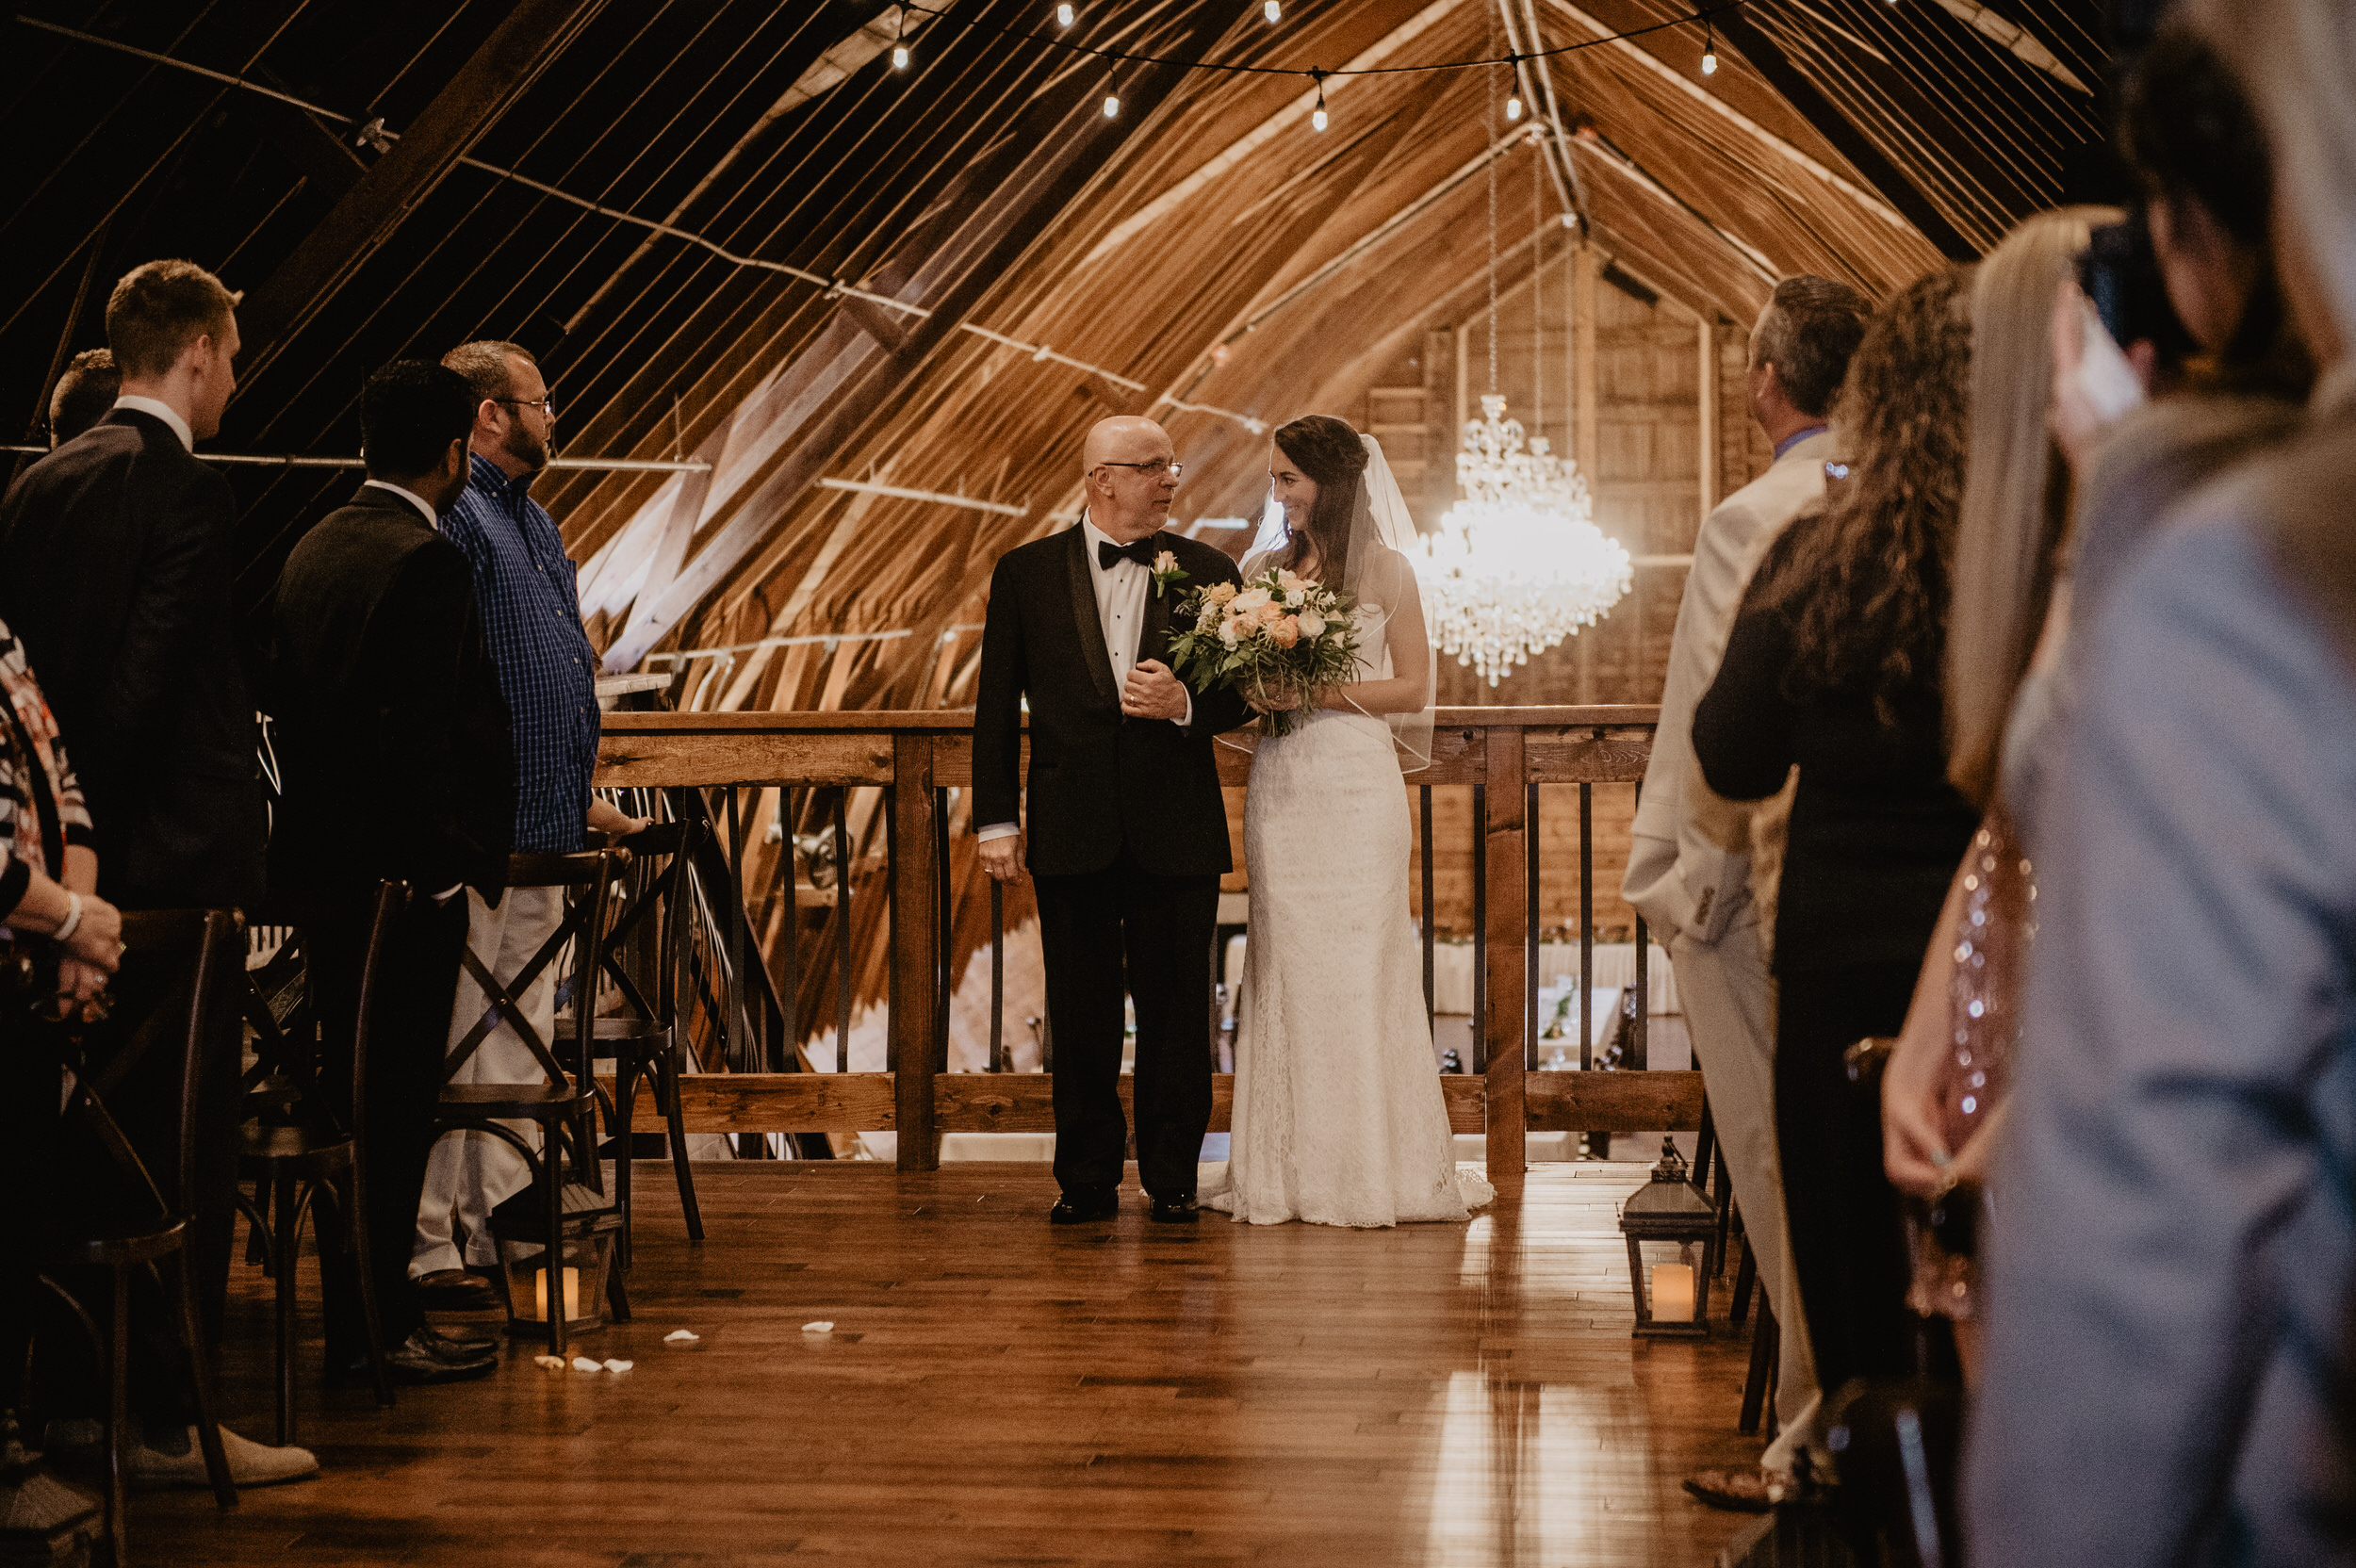 The Barn at the Ackerhurst Dairy Farm Omaha Nebraska Wedding Kaylie Sirek Photography071.jpg